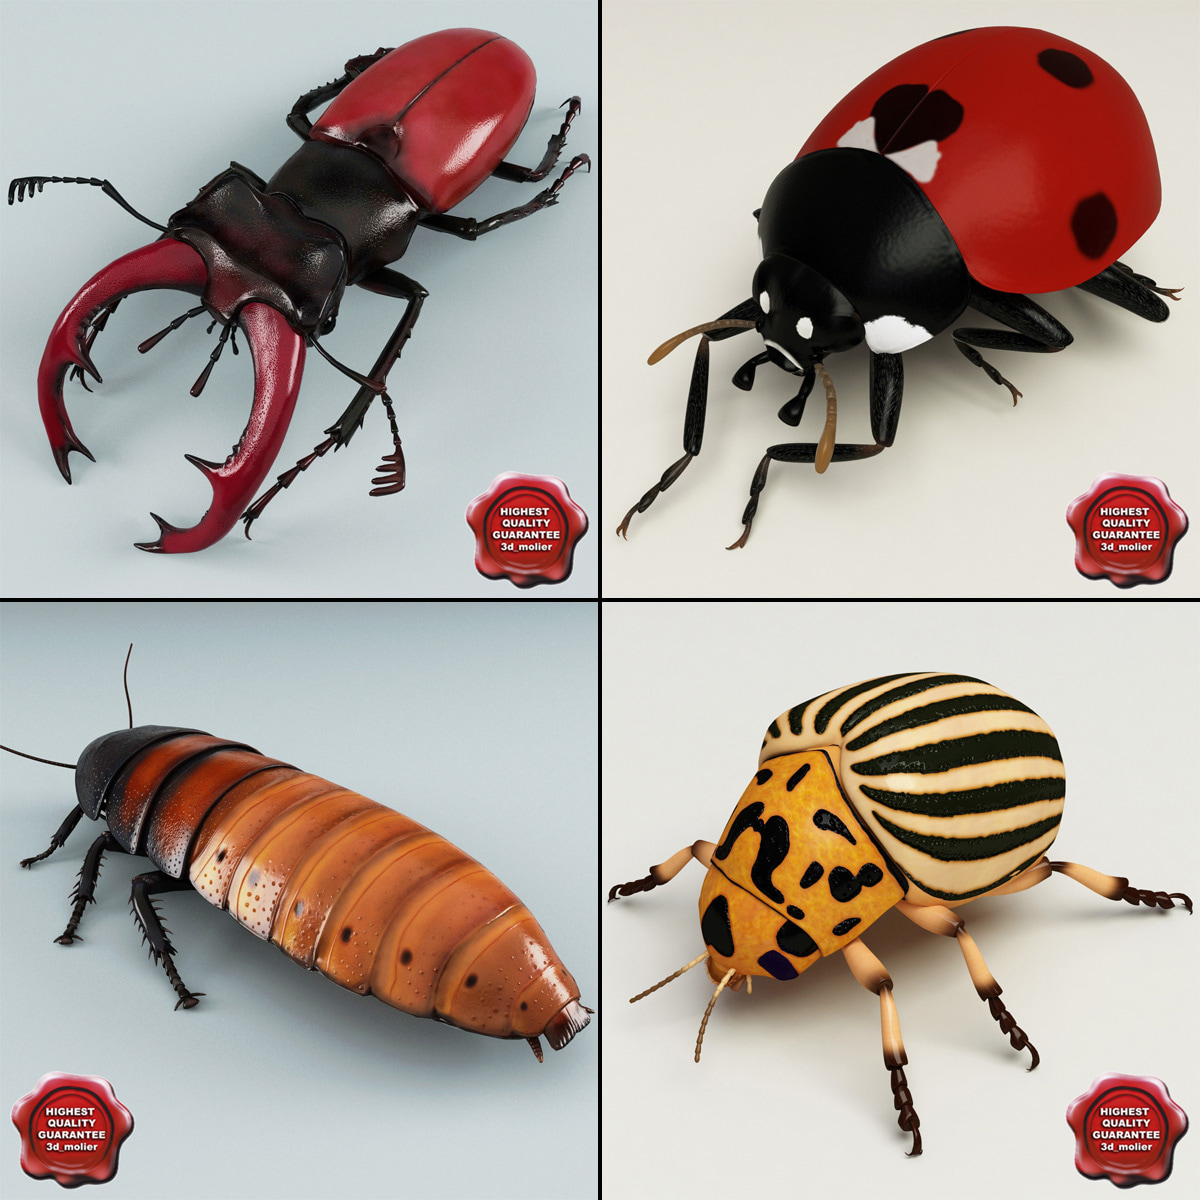 Bugs_Collection_00.jpg